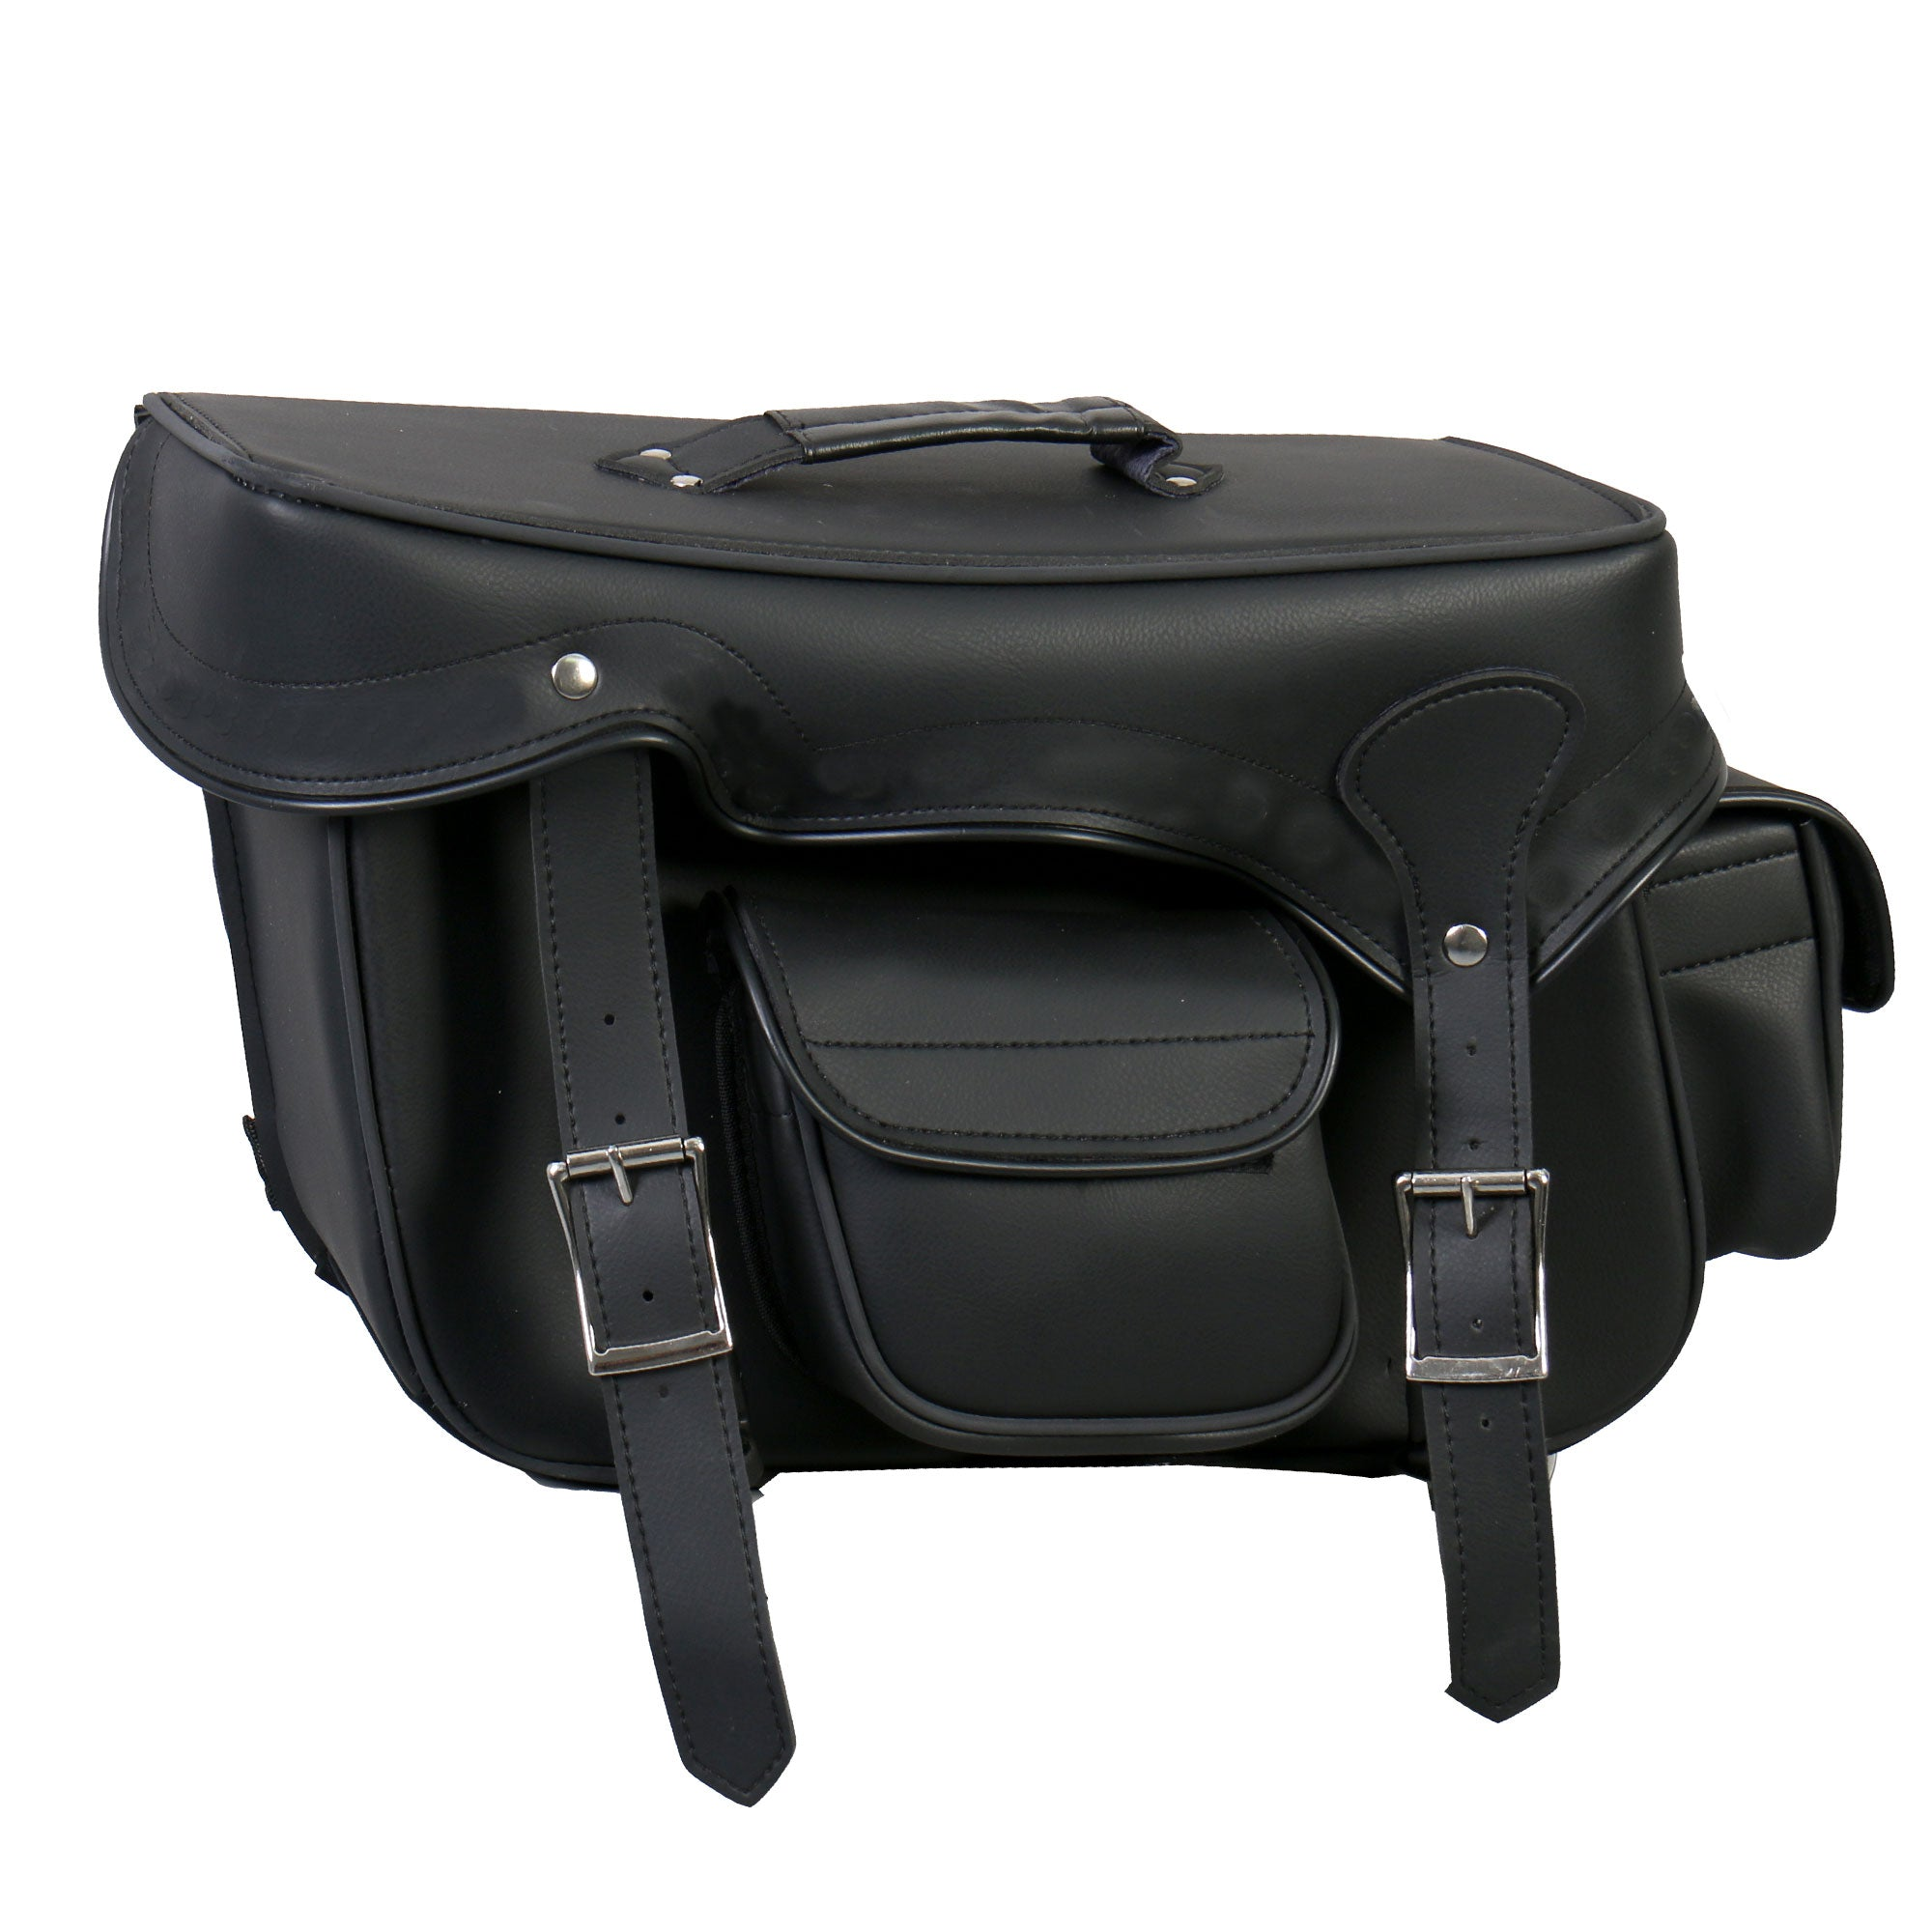 Hot Leathers Extra Large Saddle Bag with Concealed Carry Pocket